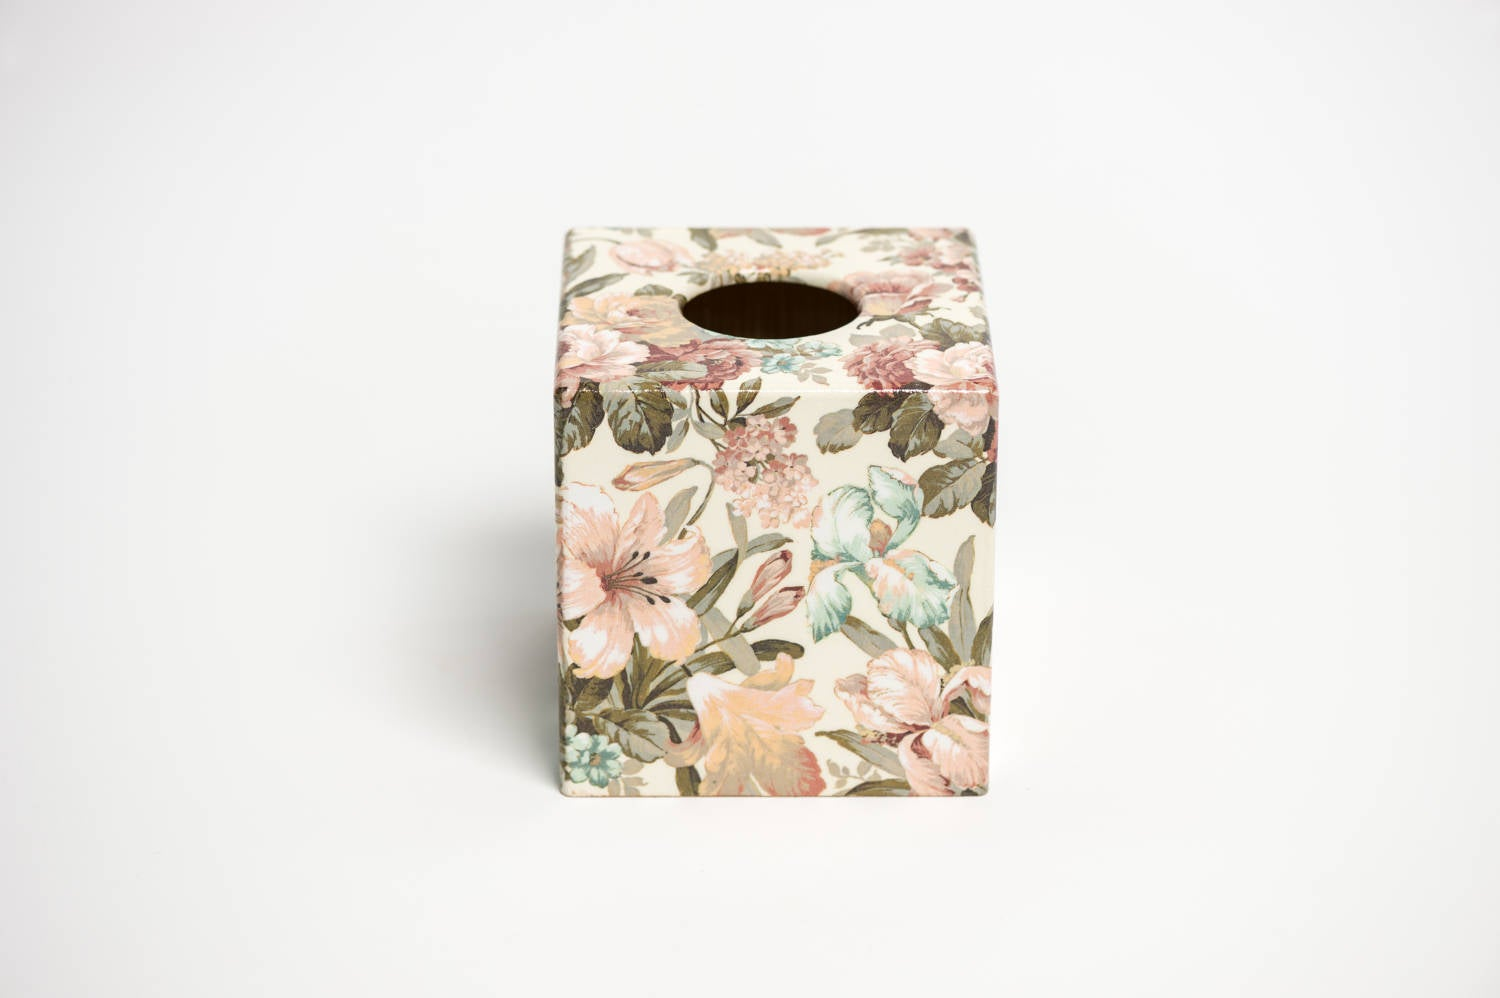 Vintage Floral Tissue Box Cover - Handmade